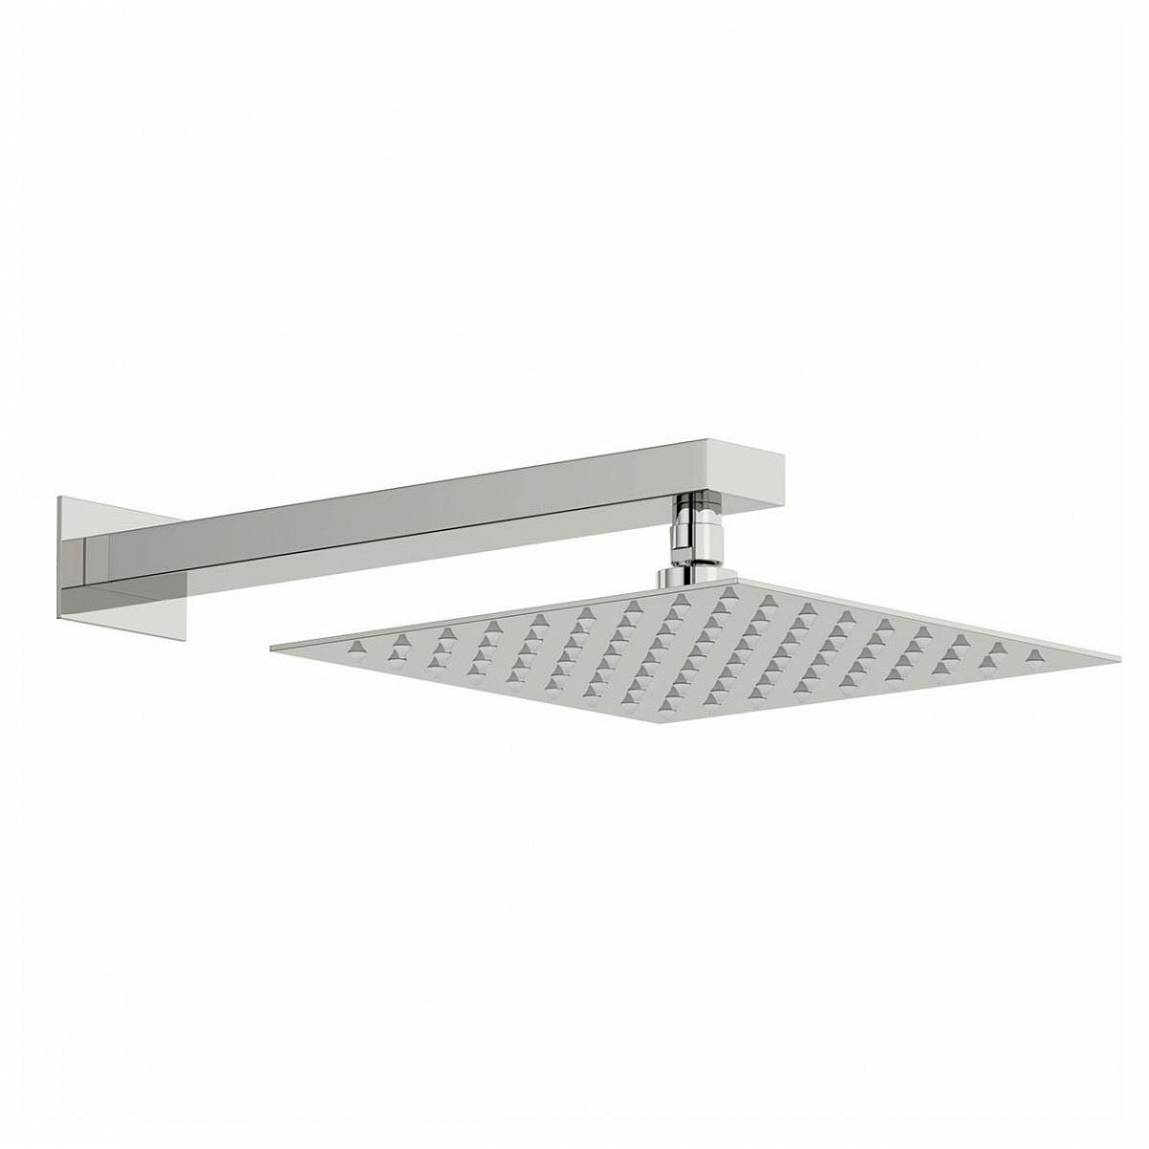 Image of Arcus 250mm Shower Head & Rectangular Wall Arm